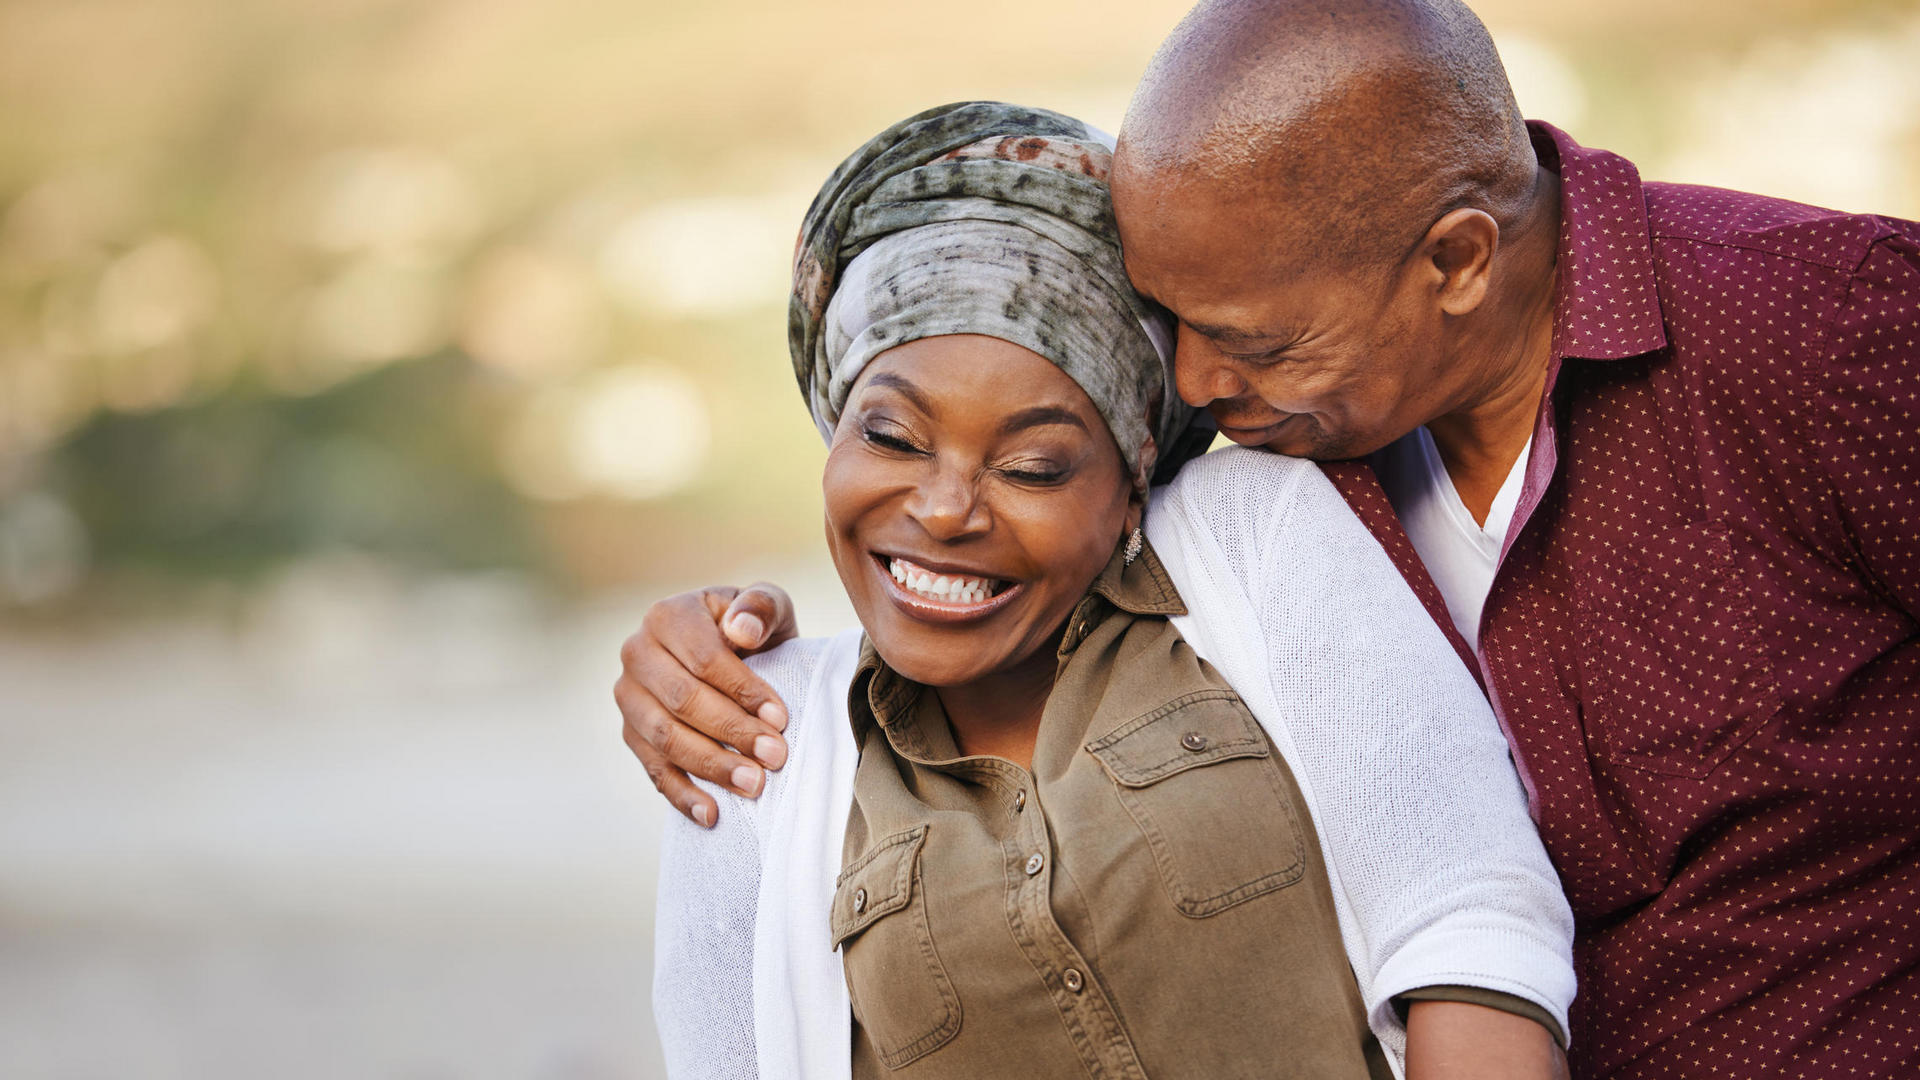 Elderly couple hugging and smiling